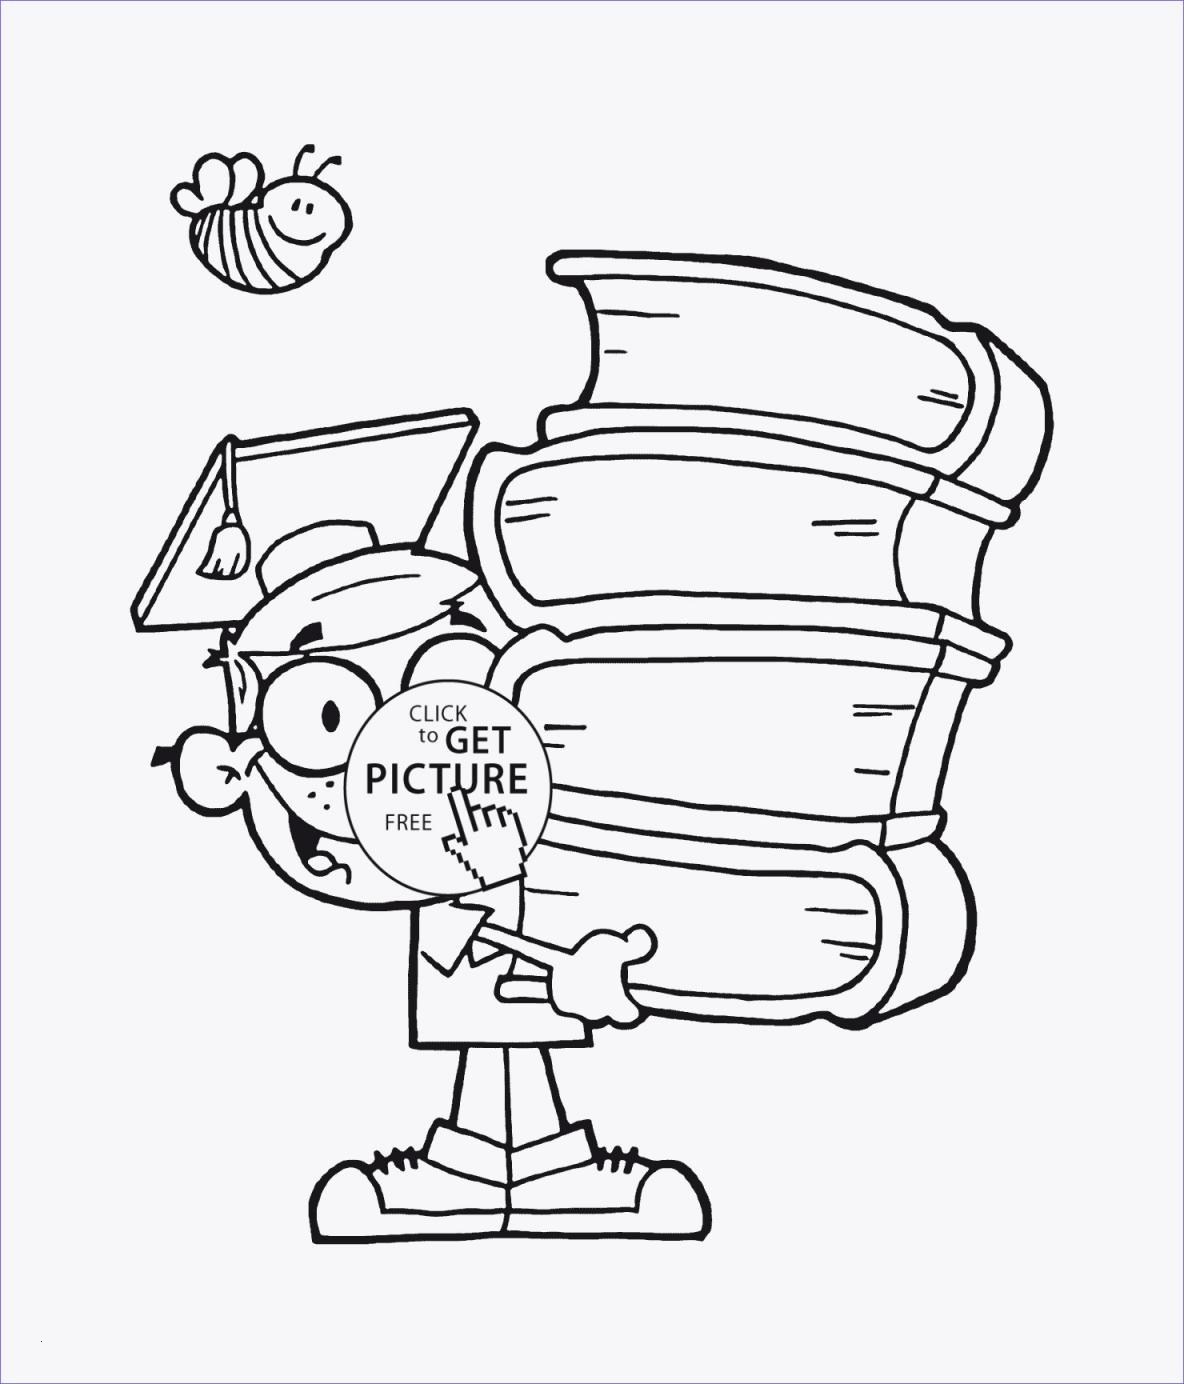 24 Carson Dellosa Coloring Pages Download Coloring Sheets